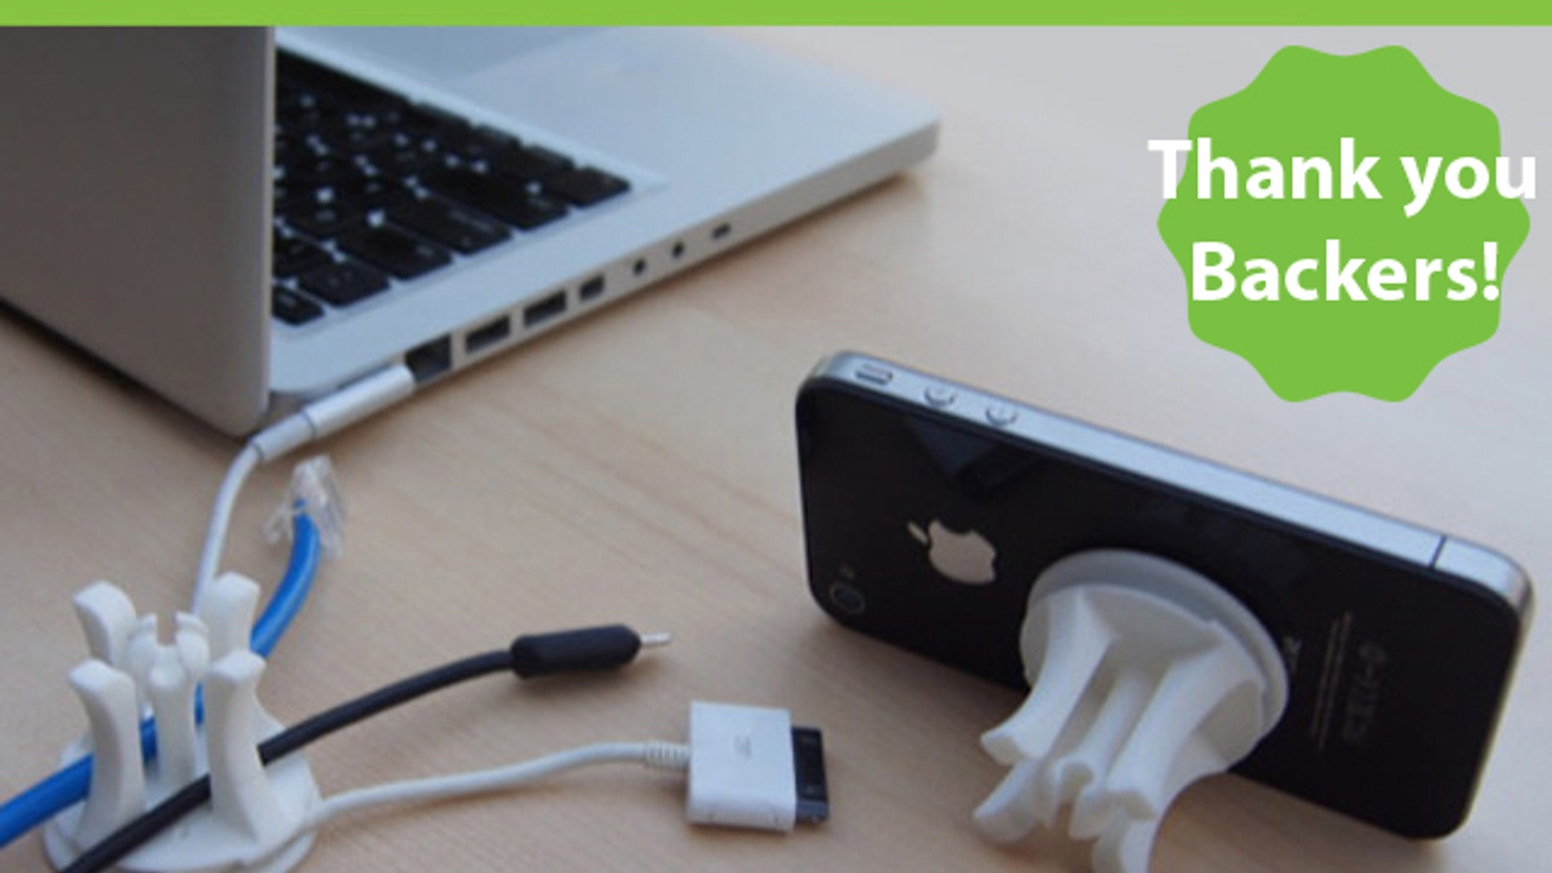 Snable - A different way to organize your cords/cables